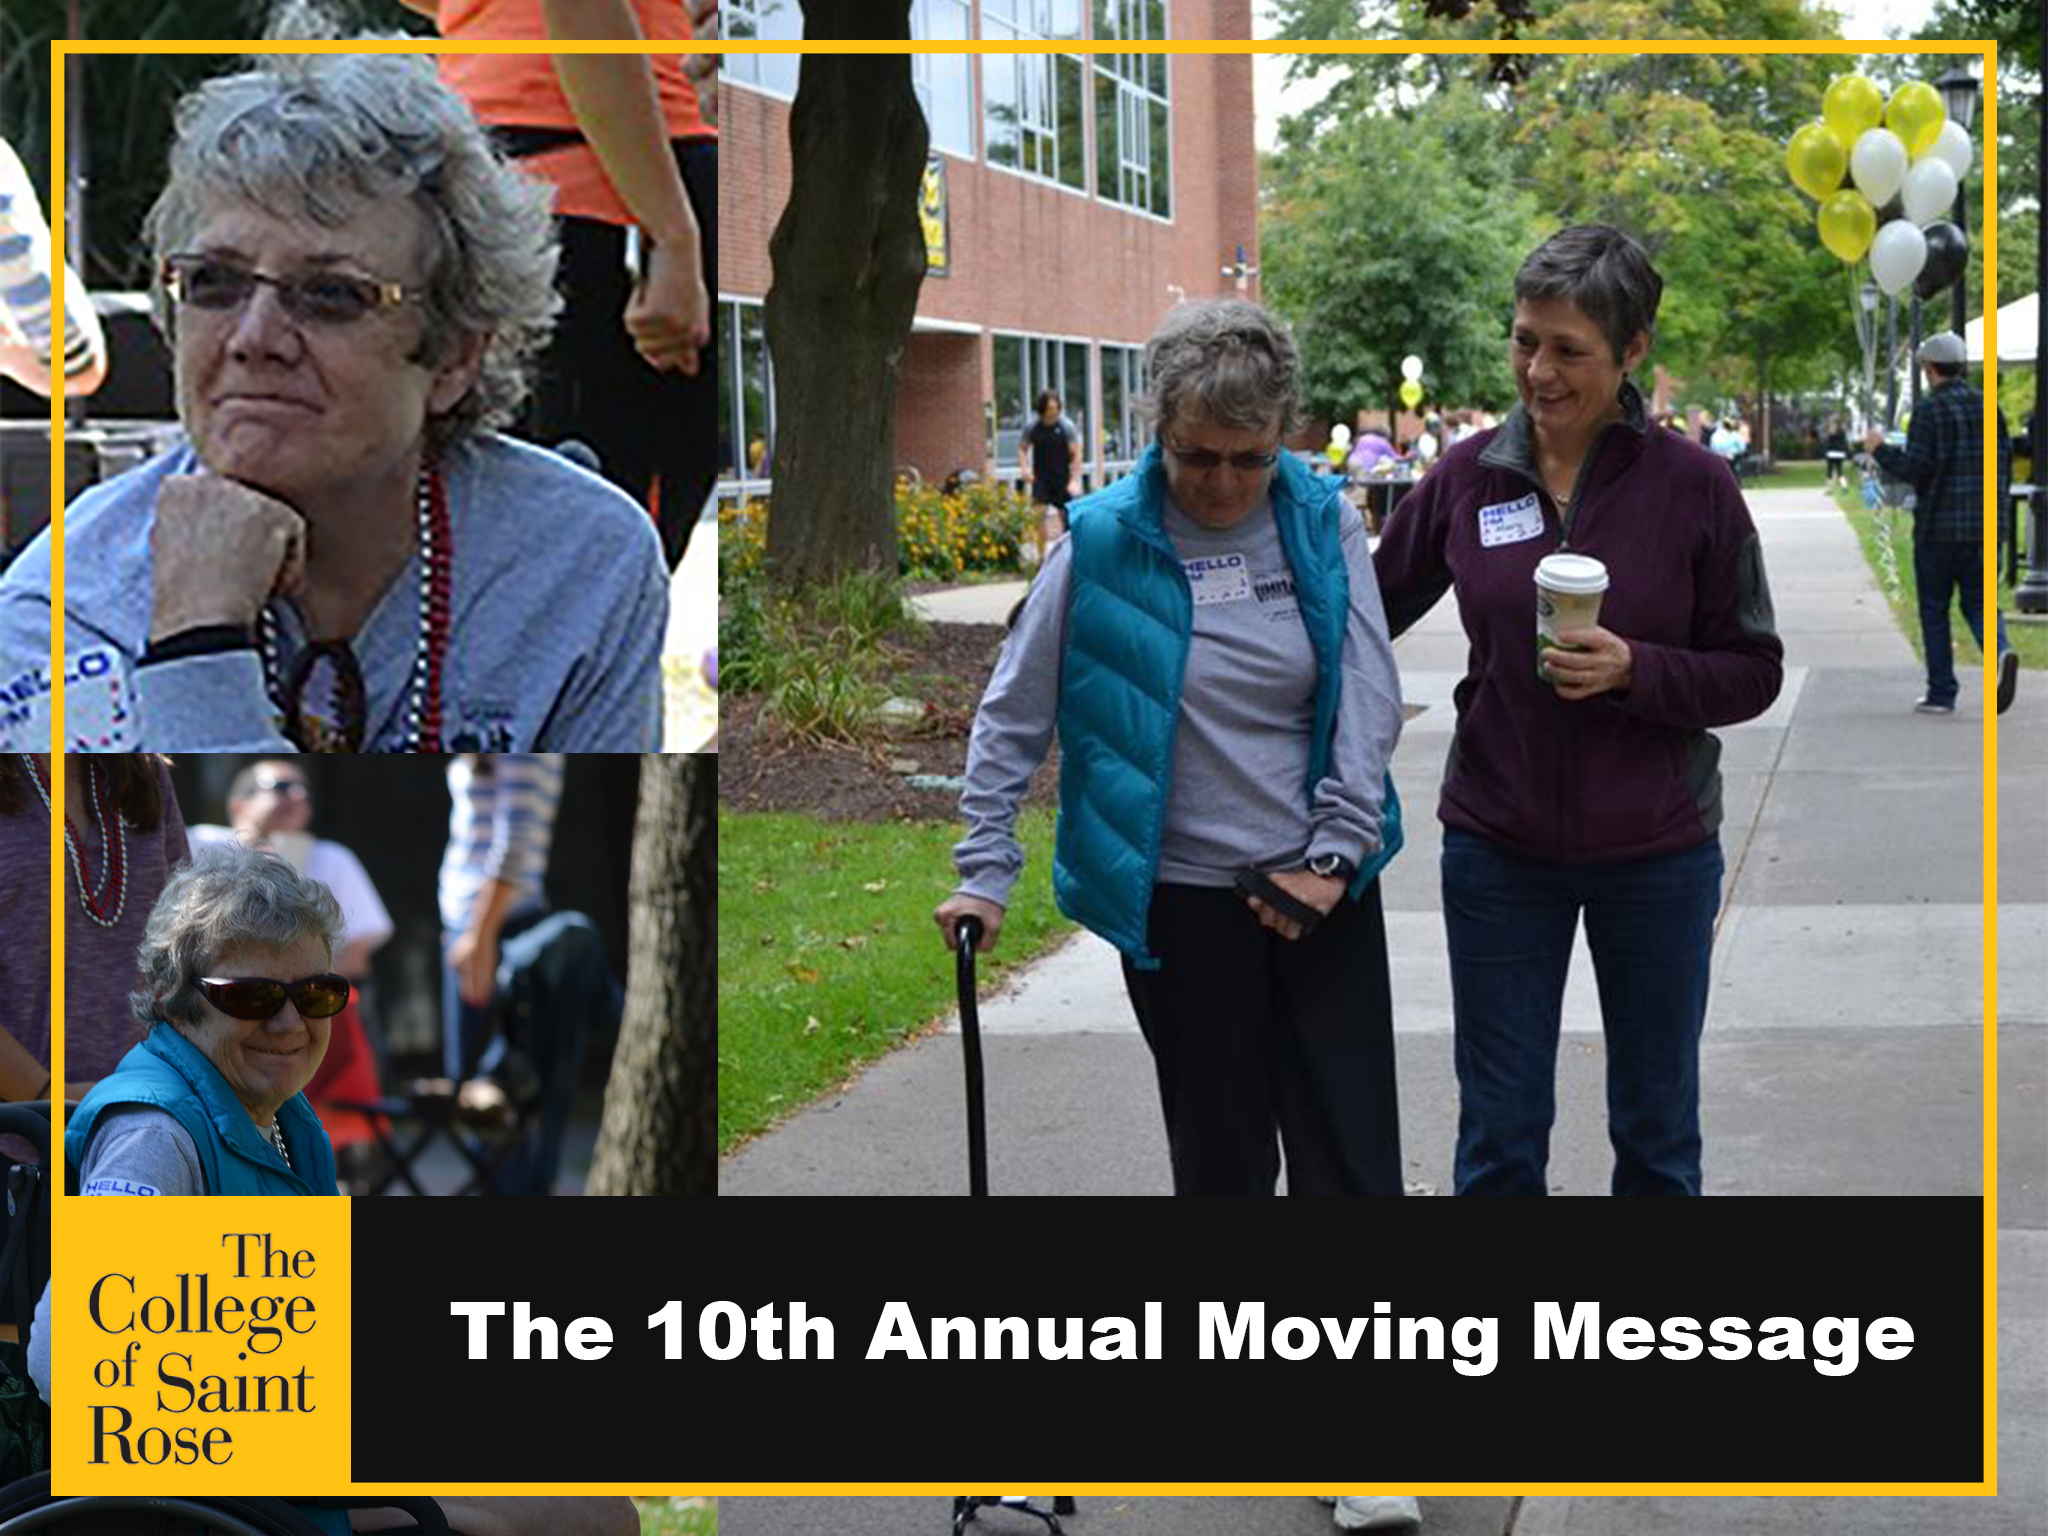 The 10th Annual Moving Message Awareness and Fundraising Walk